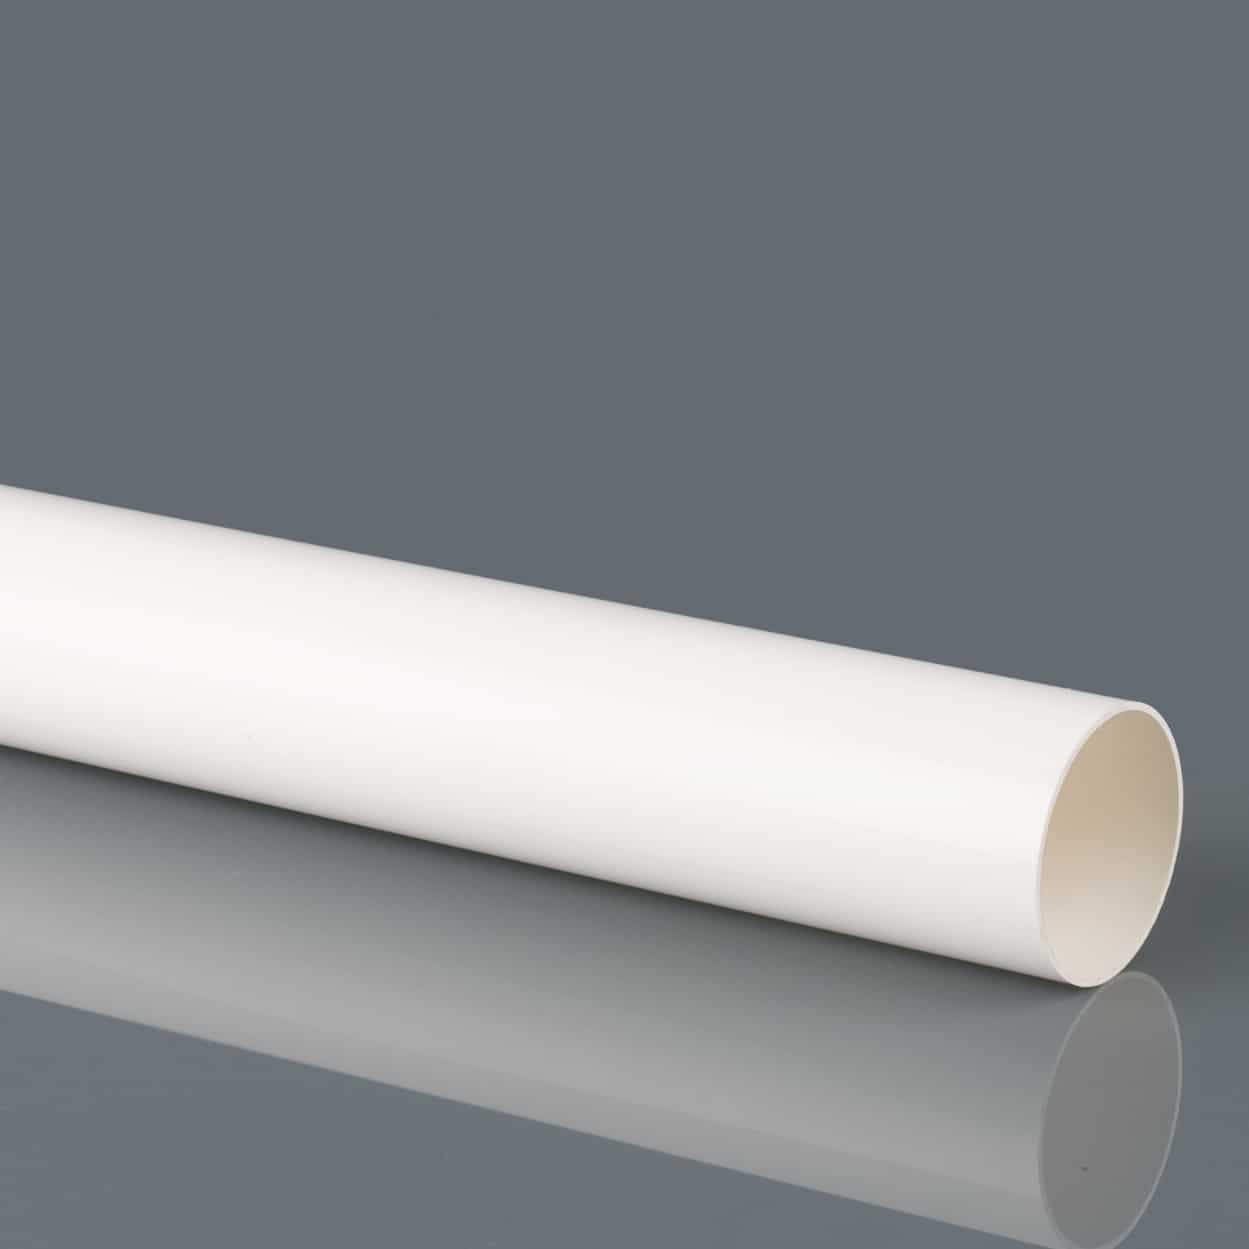 32mm Solvent Weld Waste Pipe 3M White